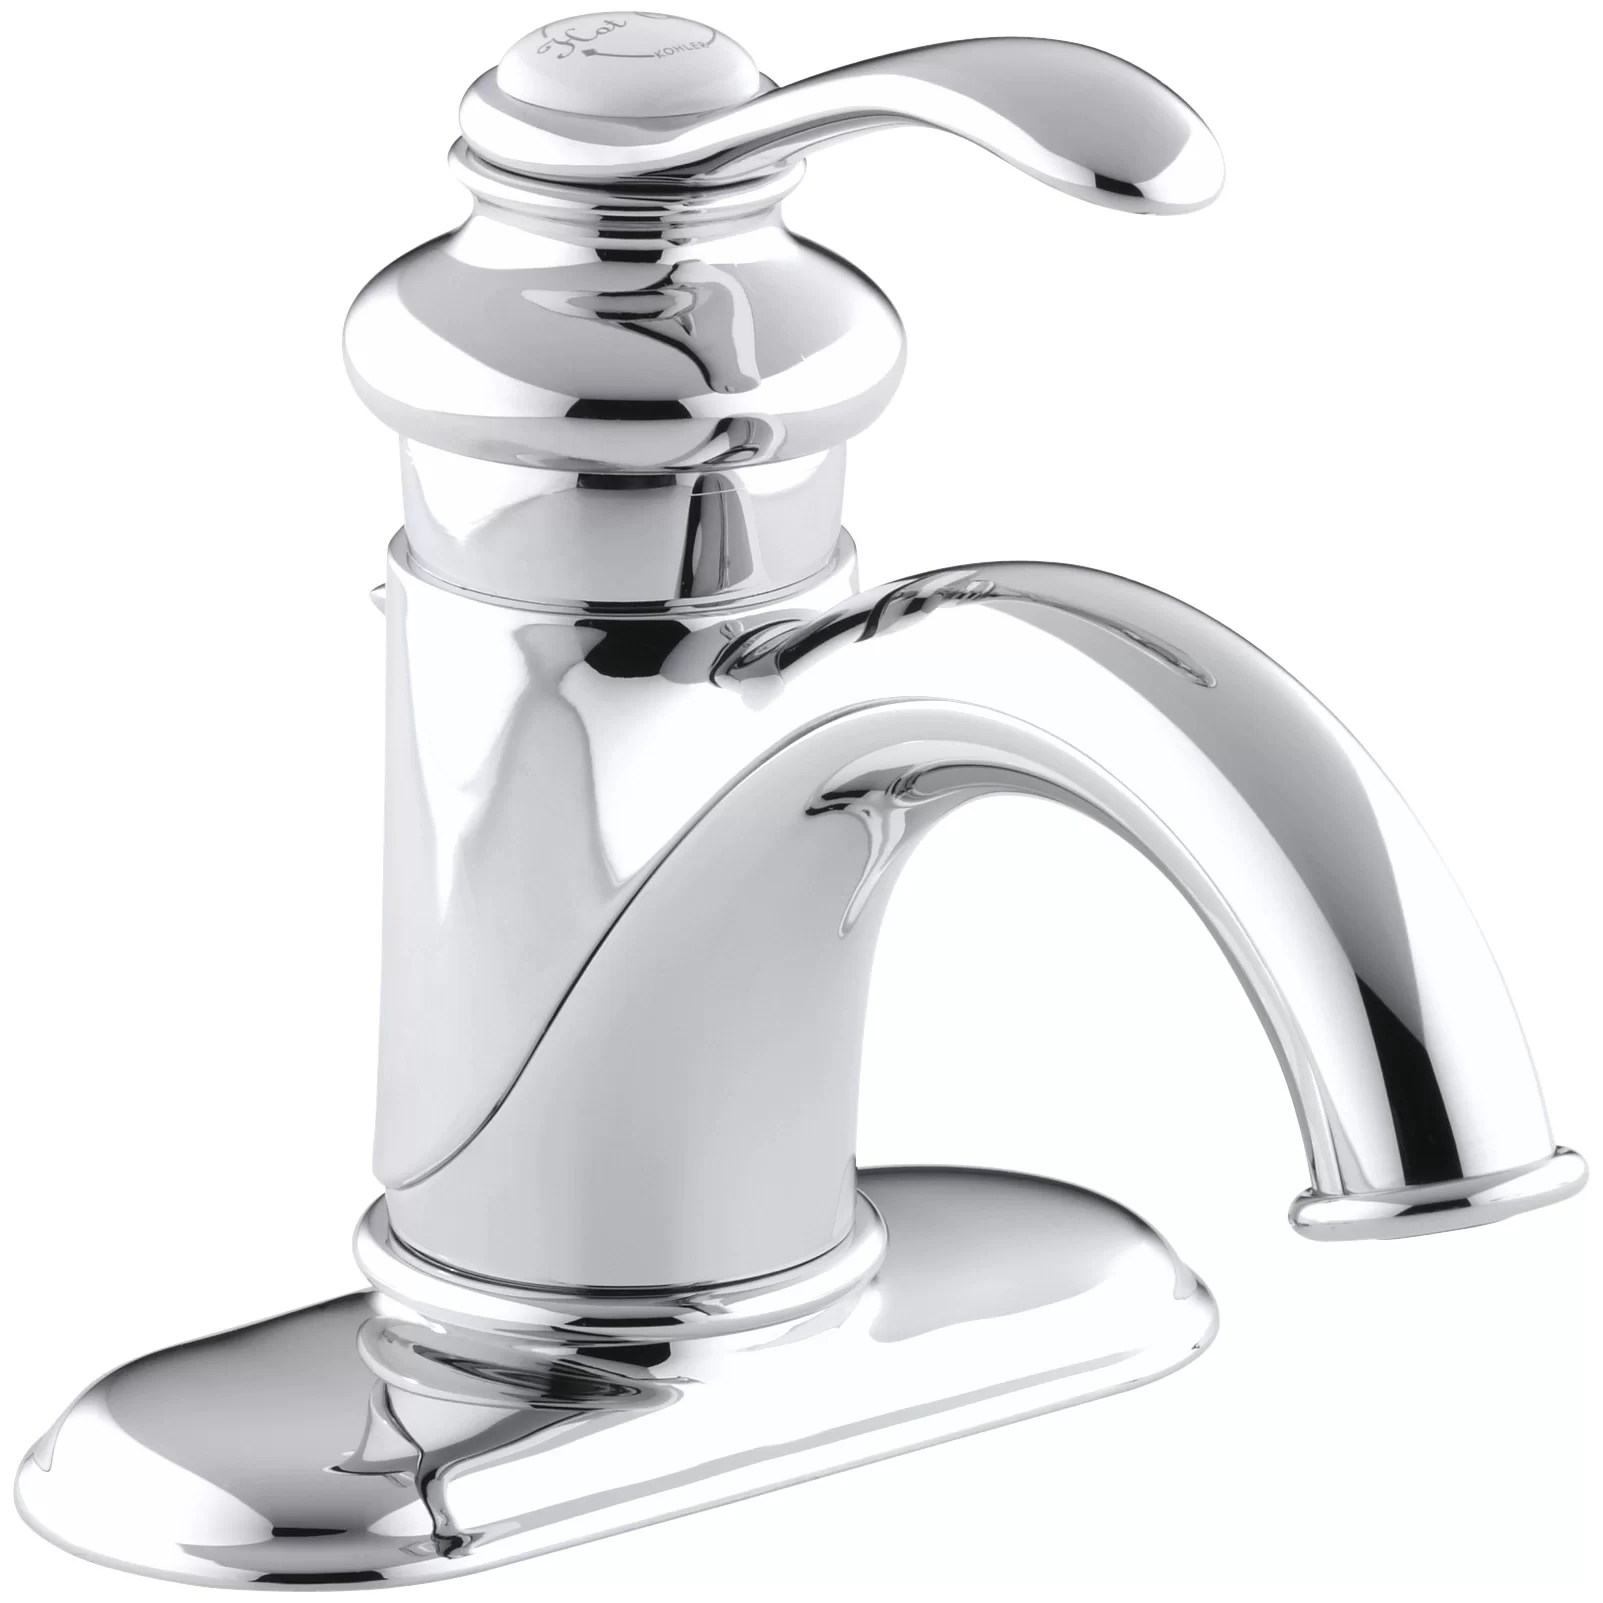 Fairfax Centerset Bathroom Sink Faucet with Single Lever Handle  Wayfair